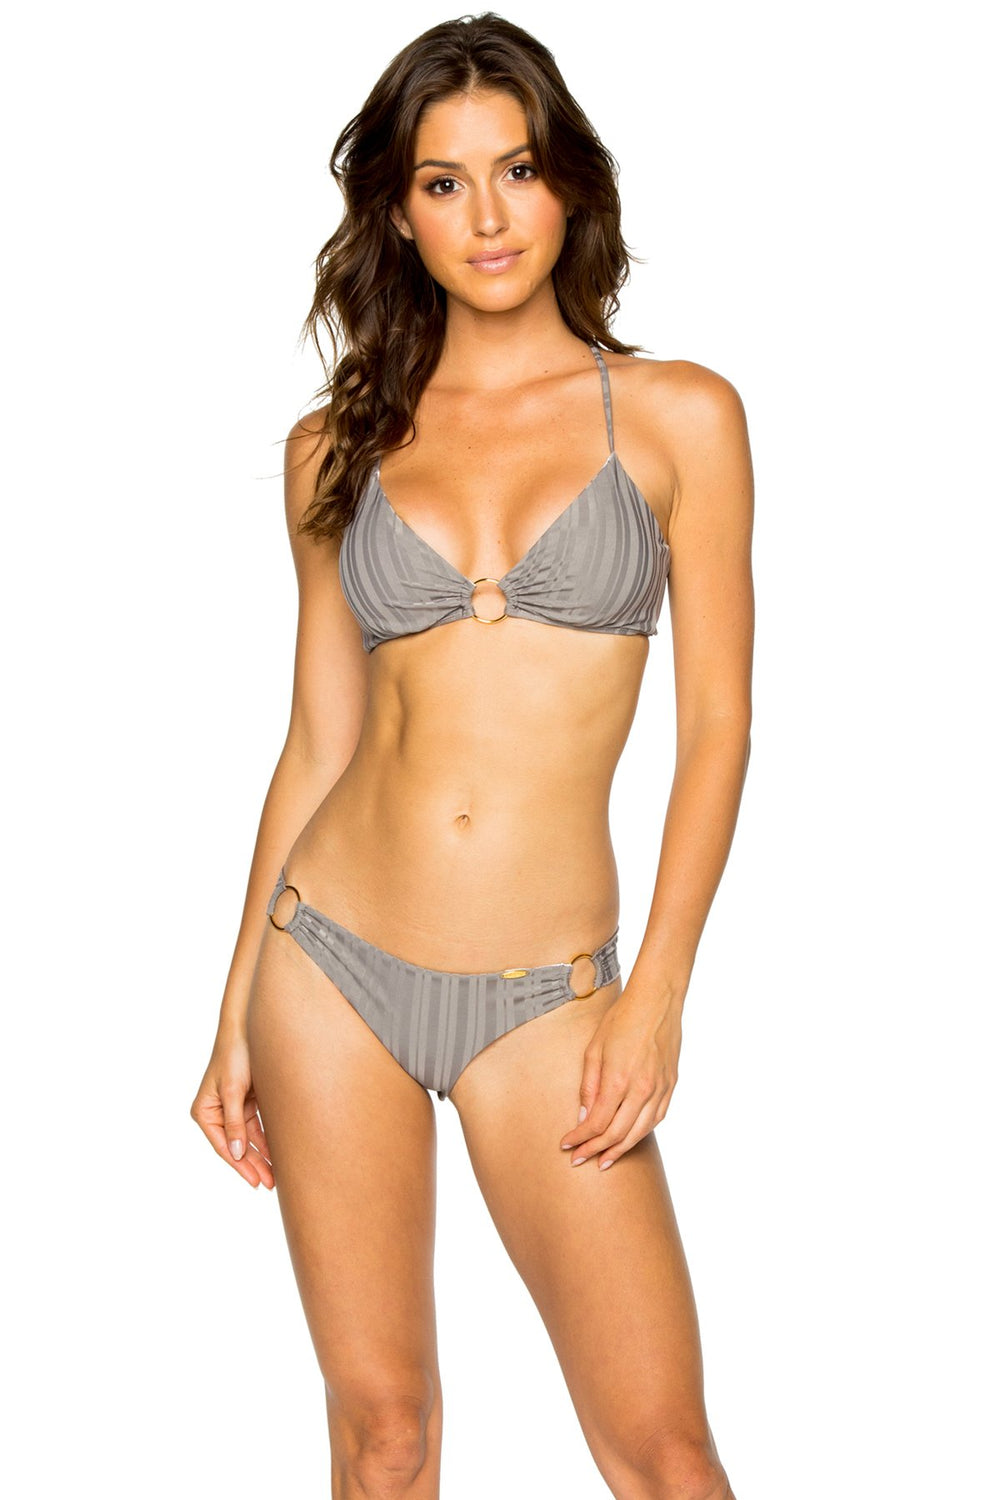 TURI TURAI - Bralette Top & Wavey Ruched Back Brazilian Bottom • Grey